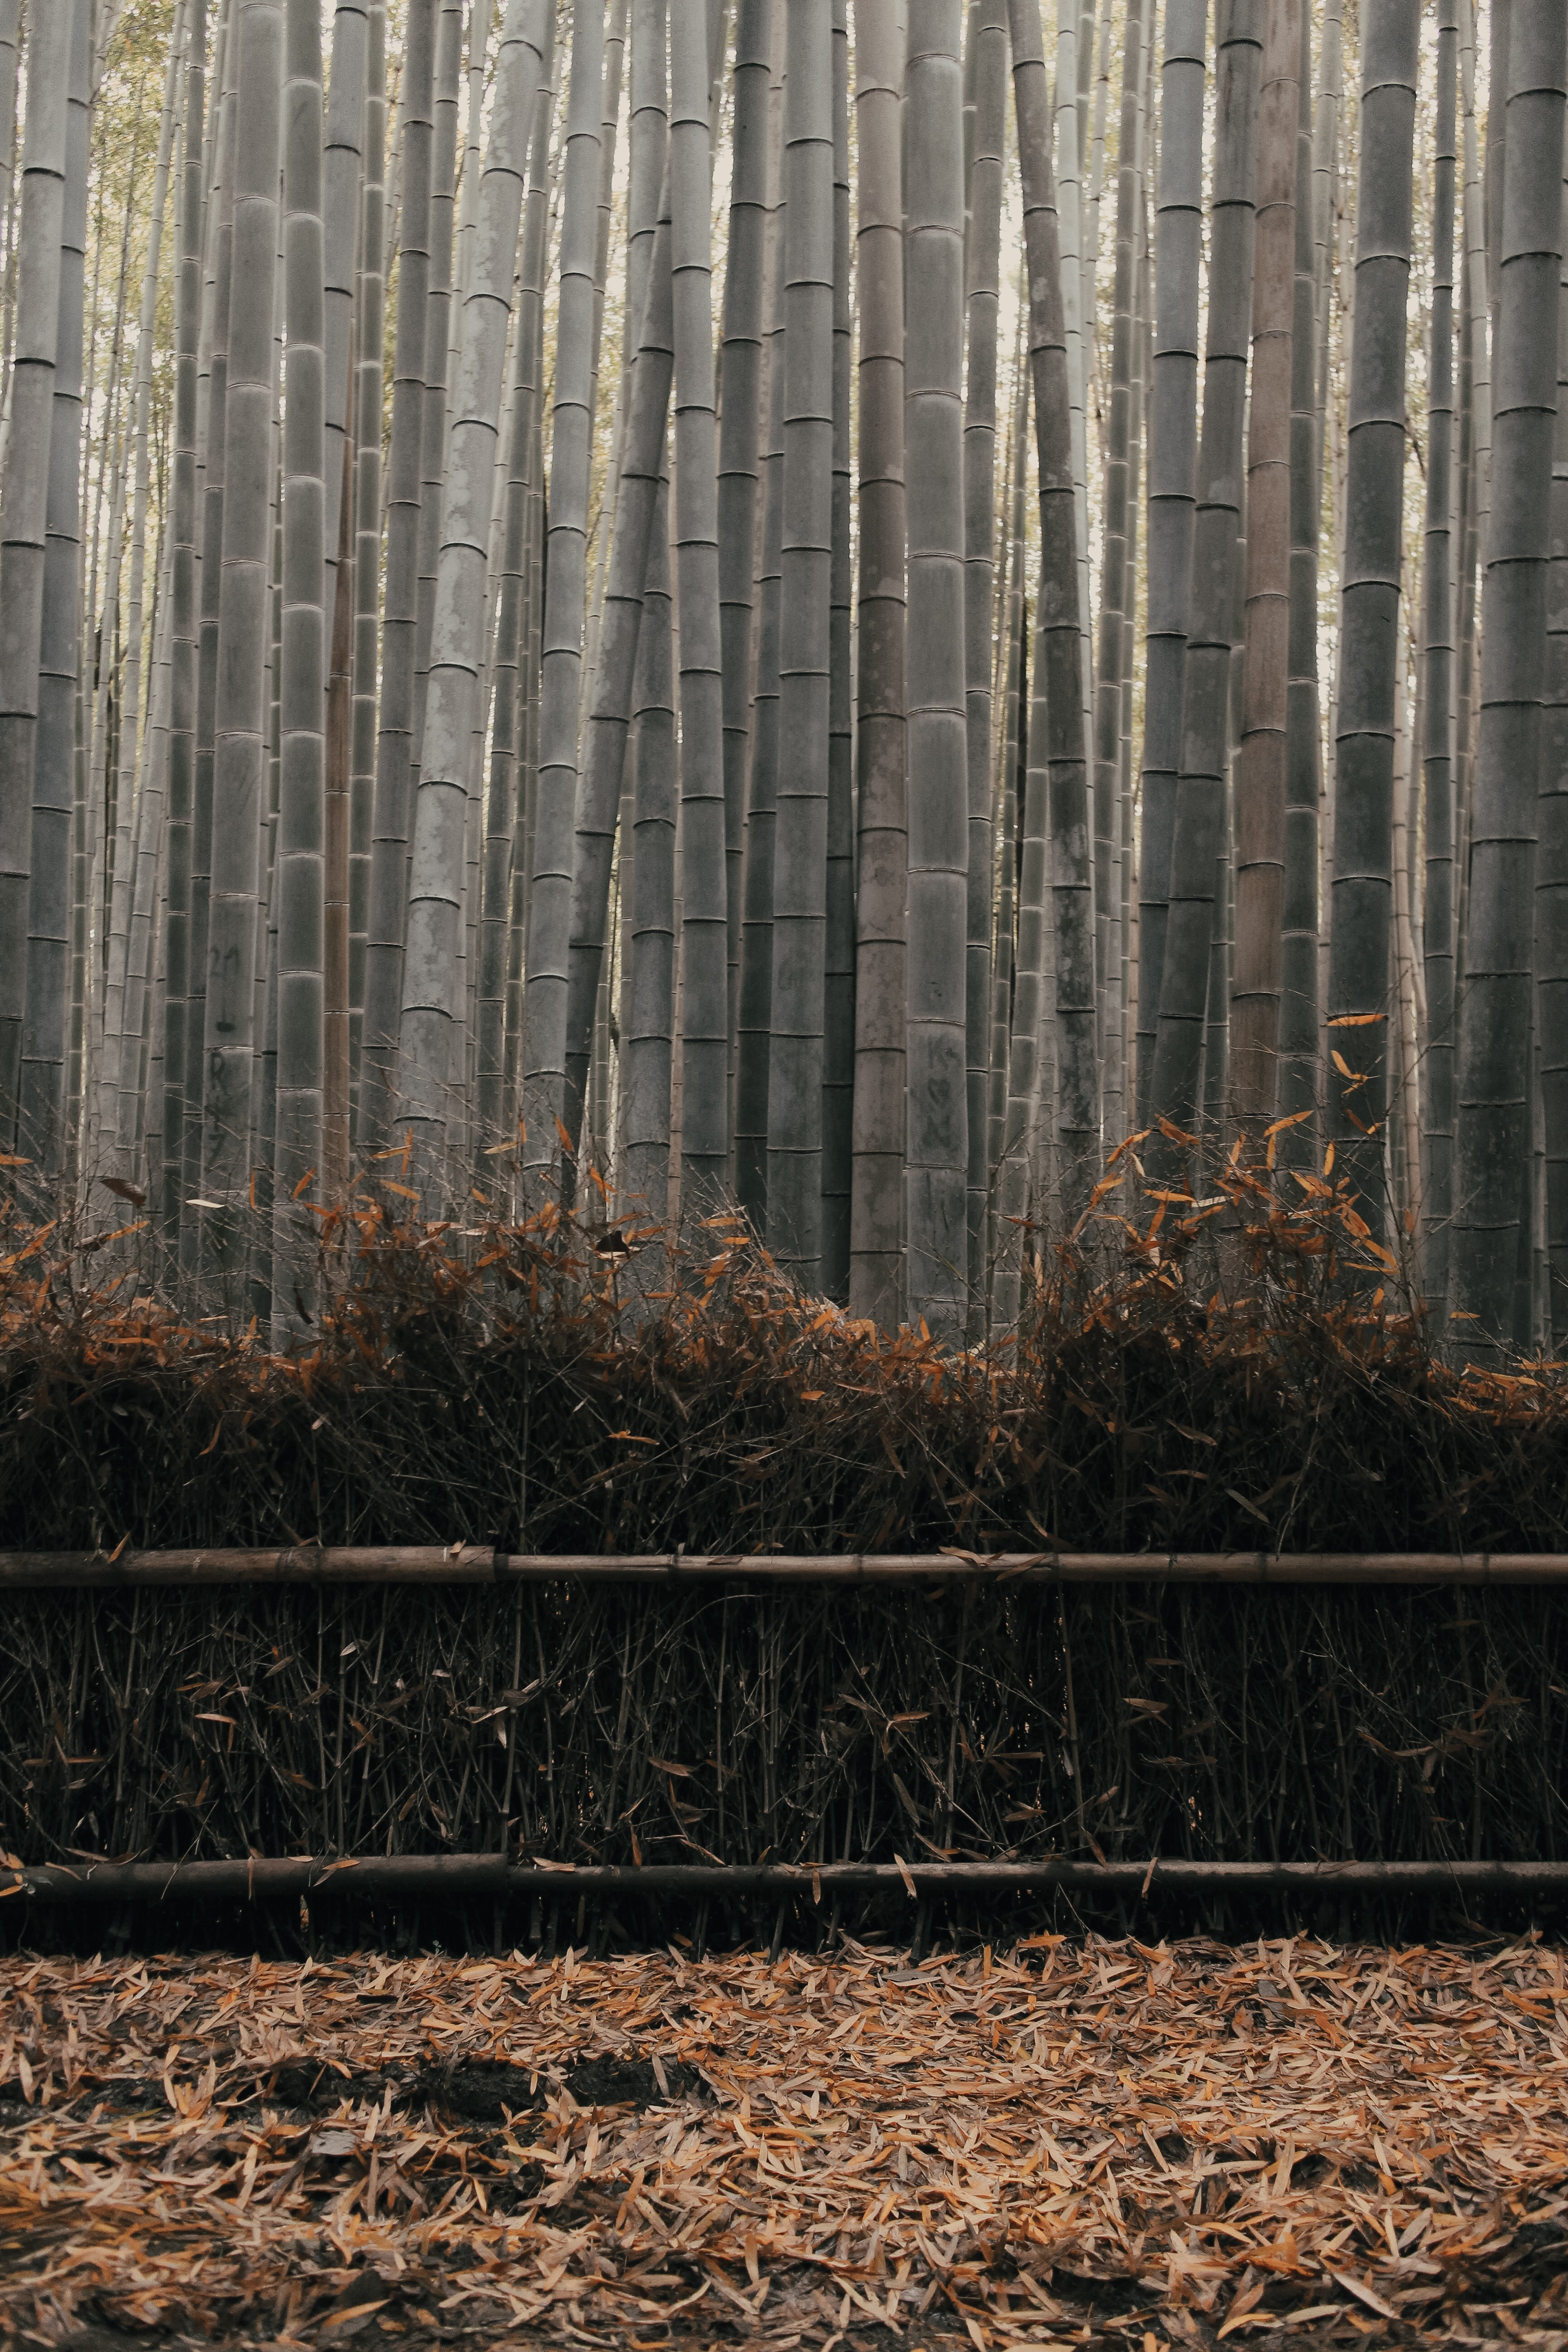 57858 download wallpaper Nature, Bamboo, Stems, Plant screensavers and pictures for free